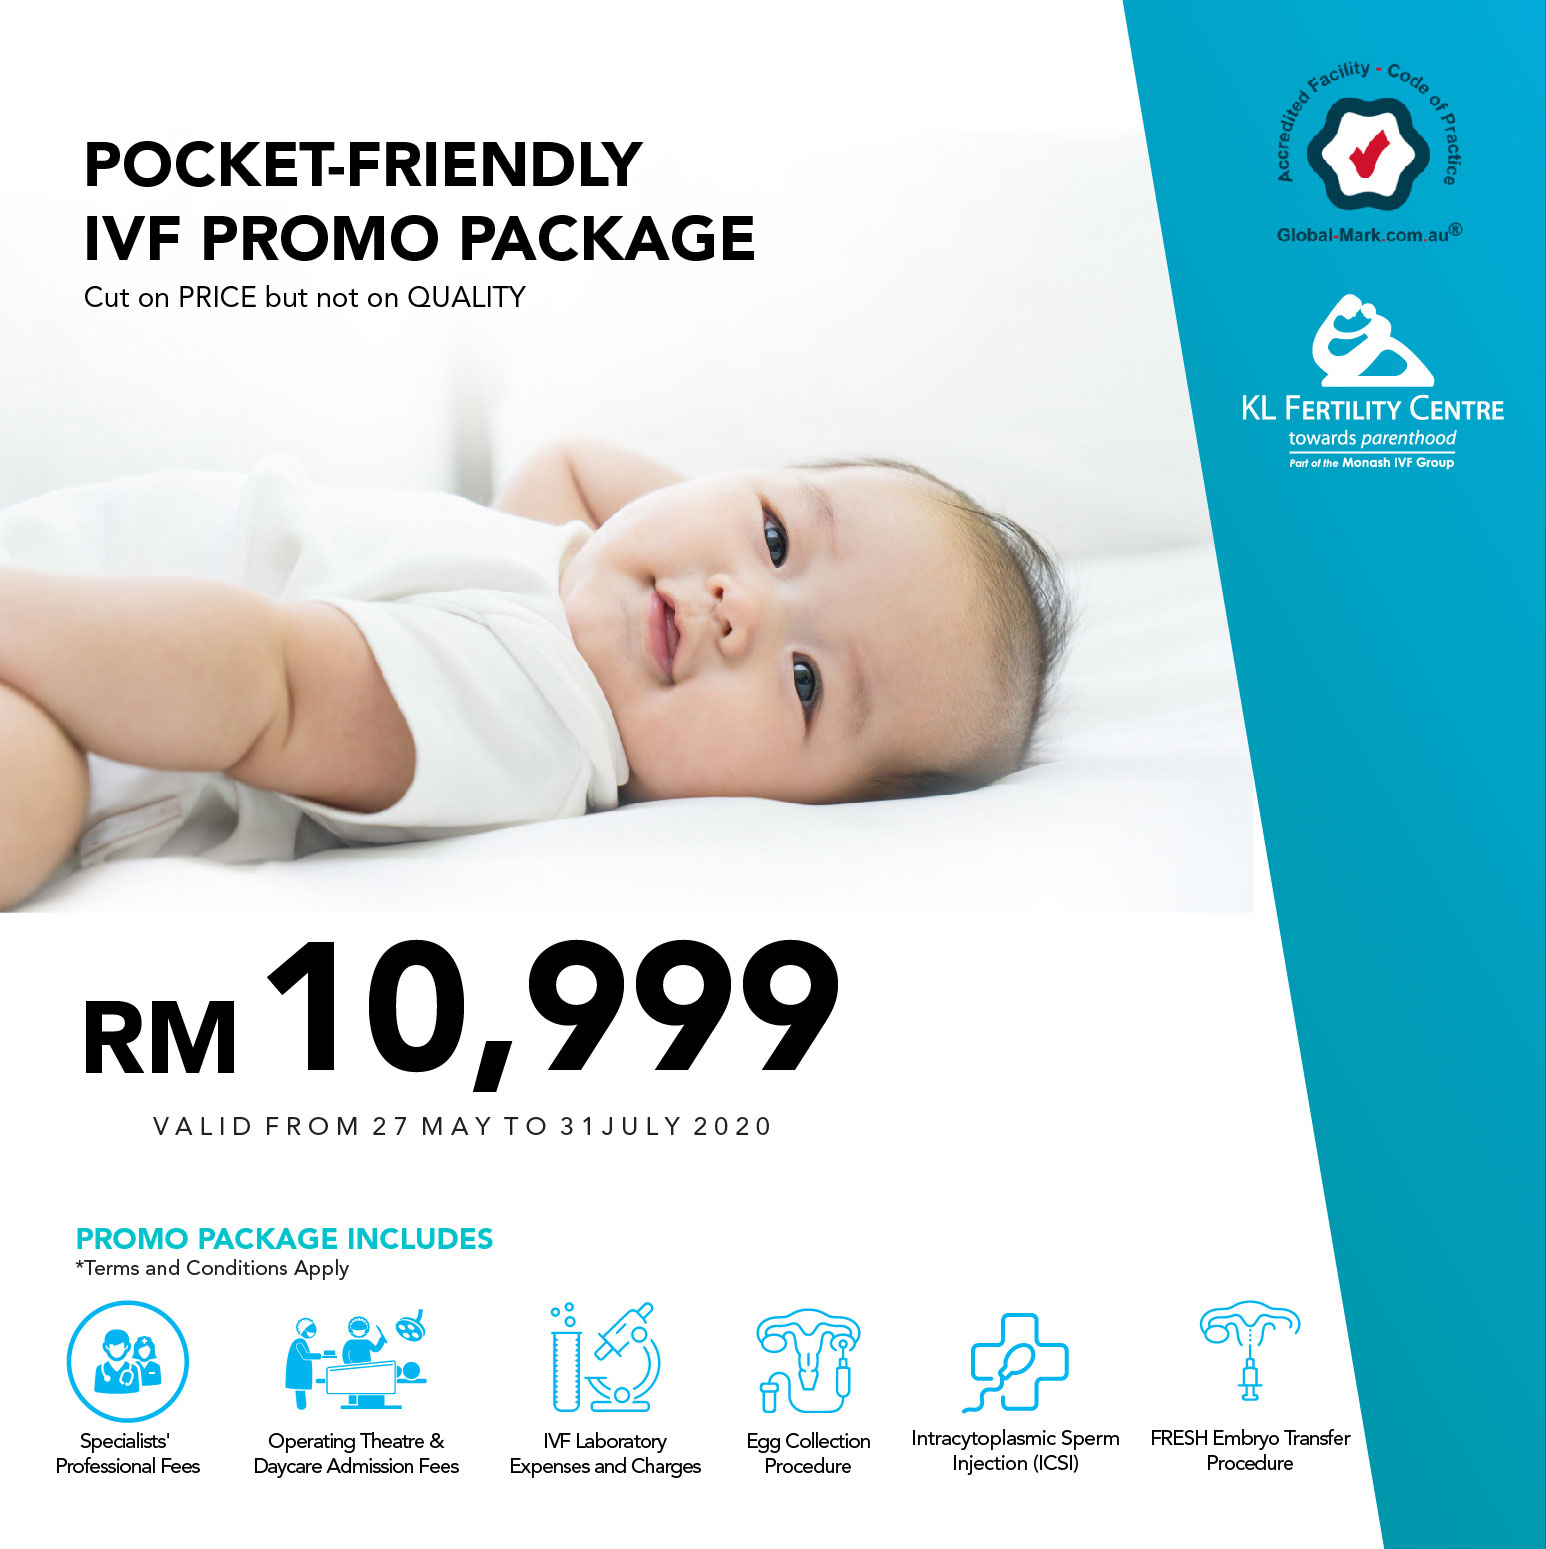 IVF Promo Package